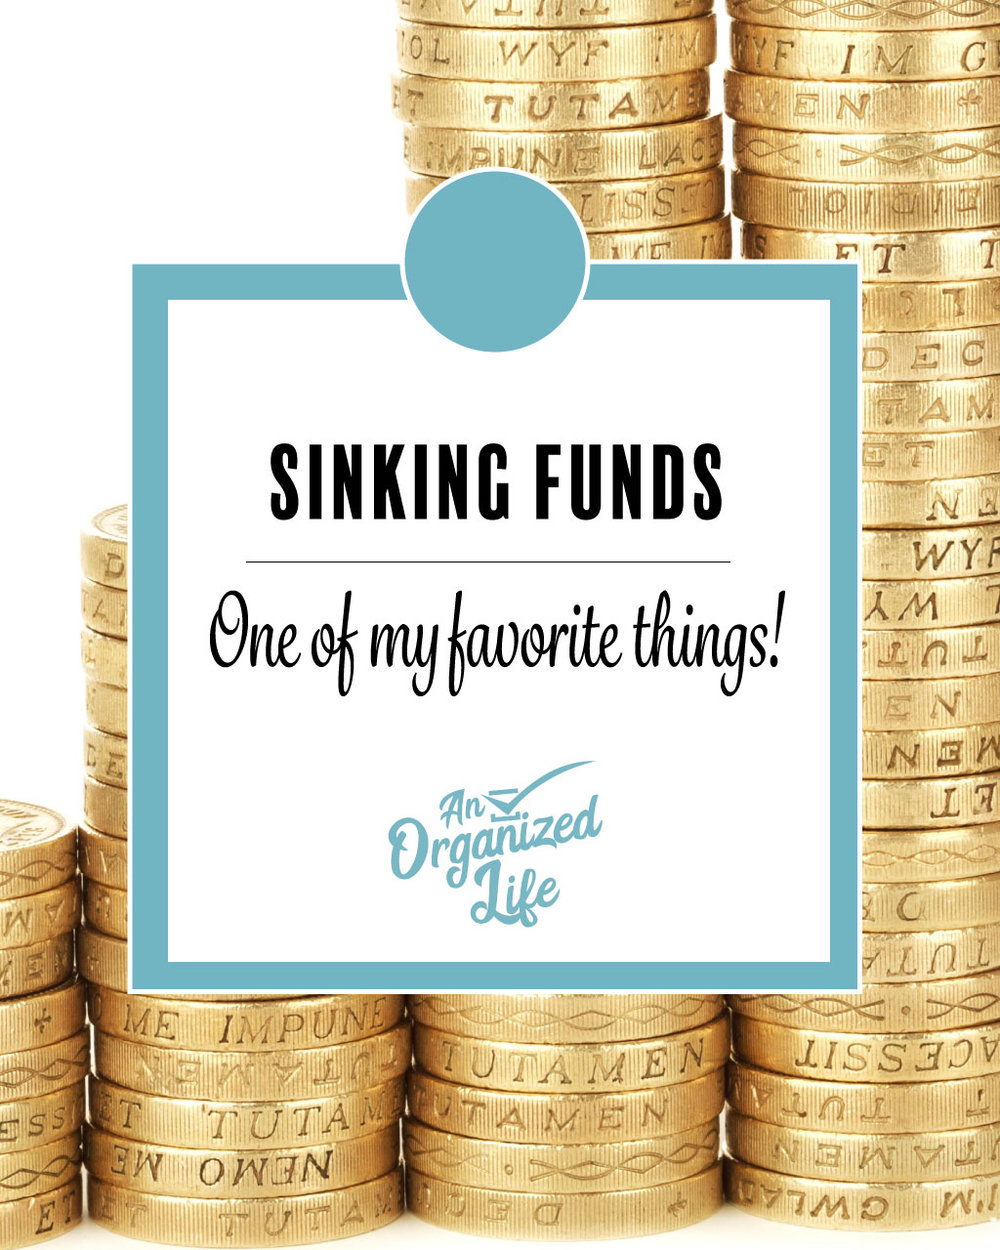 Sinking funds!